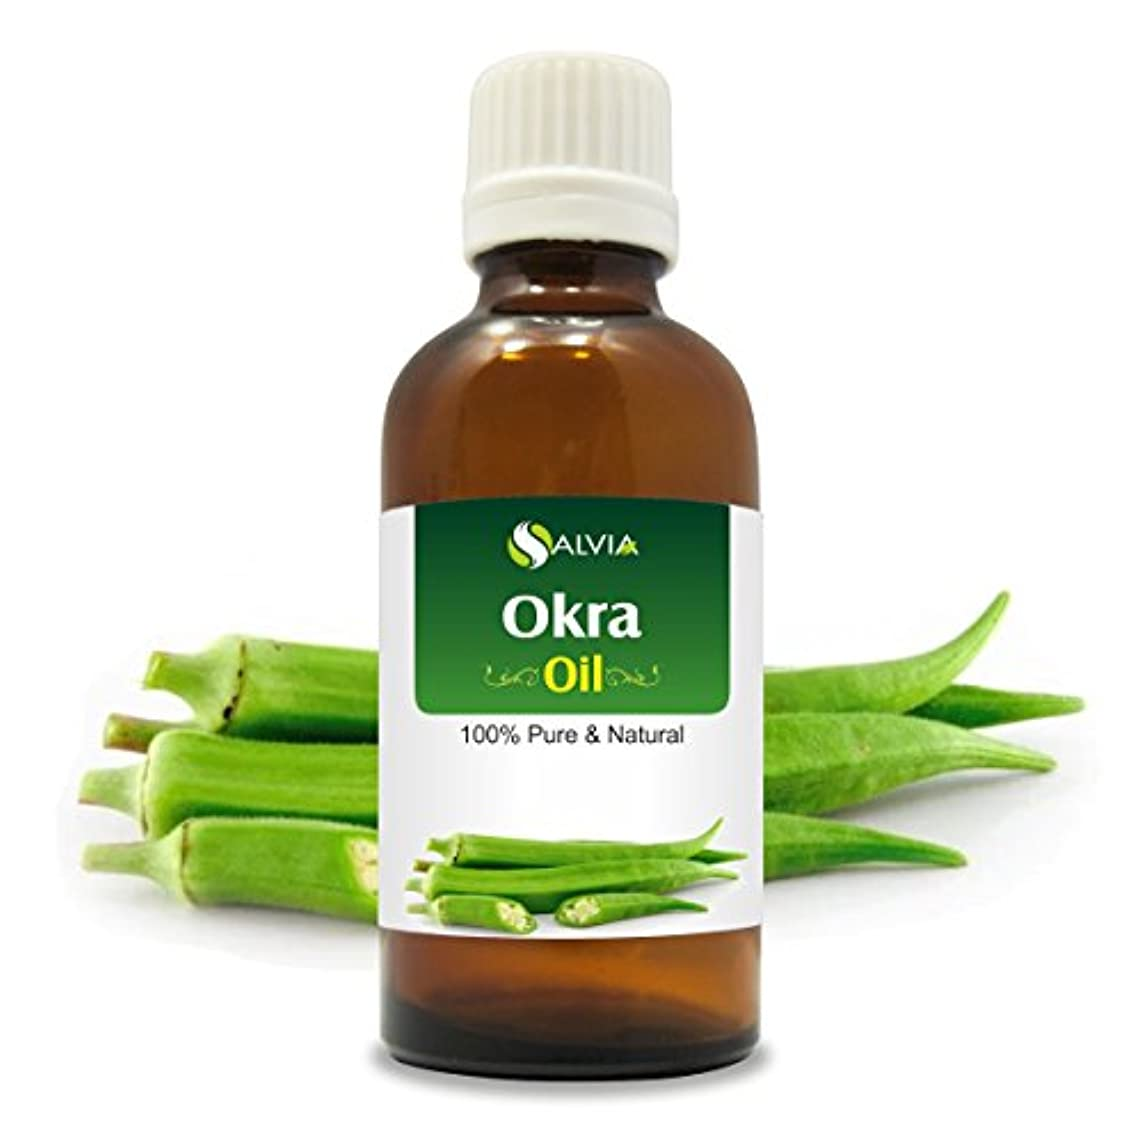 OKRA OIL 100% NATURAL PURE UNDILUTED UNCUT ESSENTIAL OIL 100ML